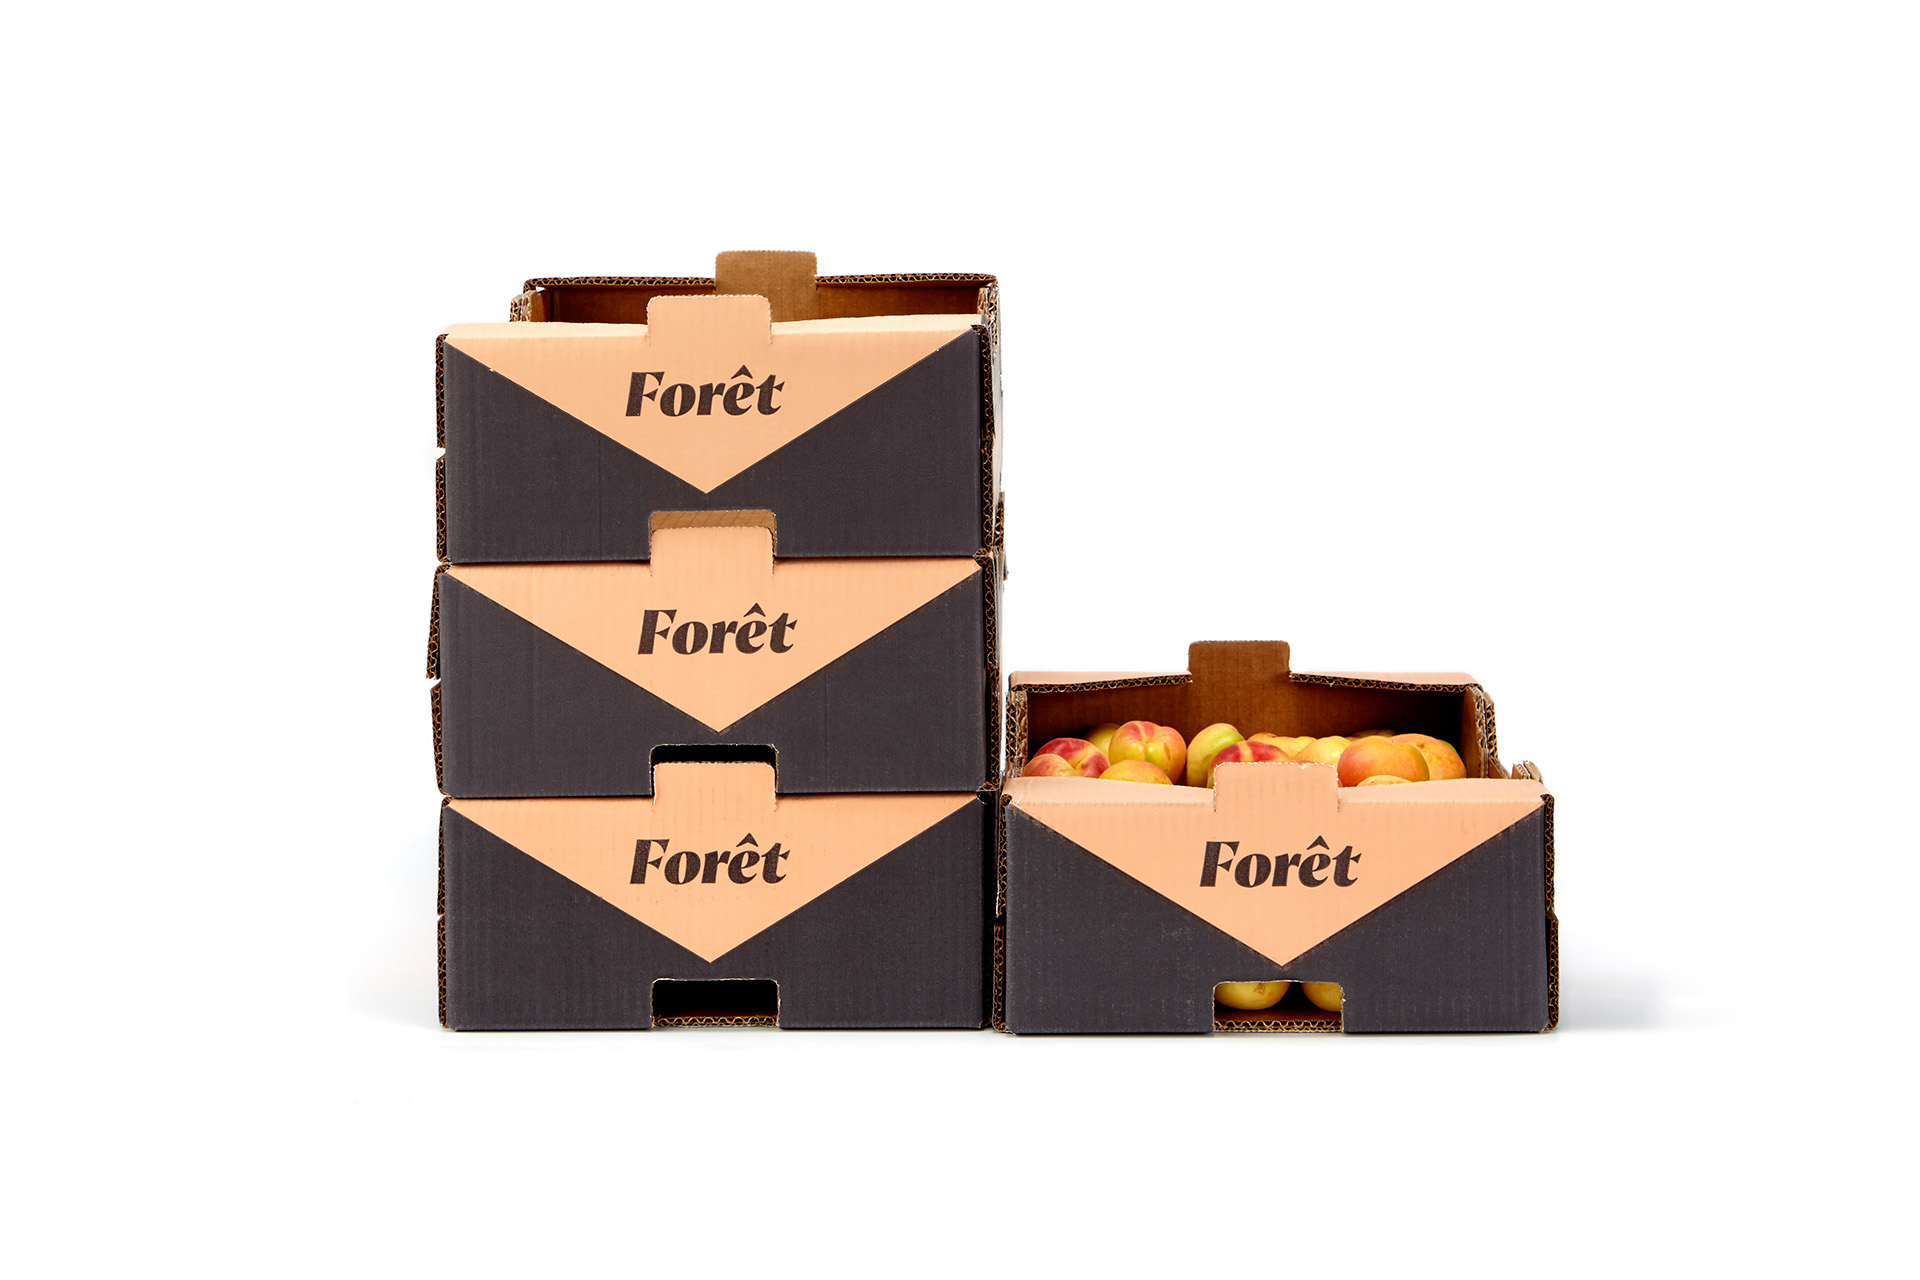 foret b